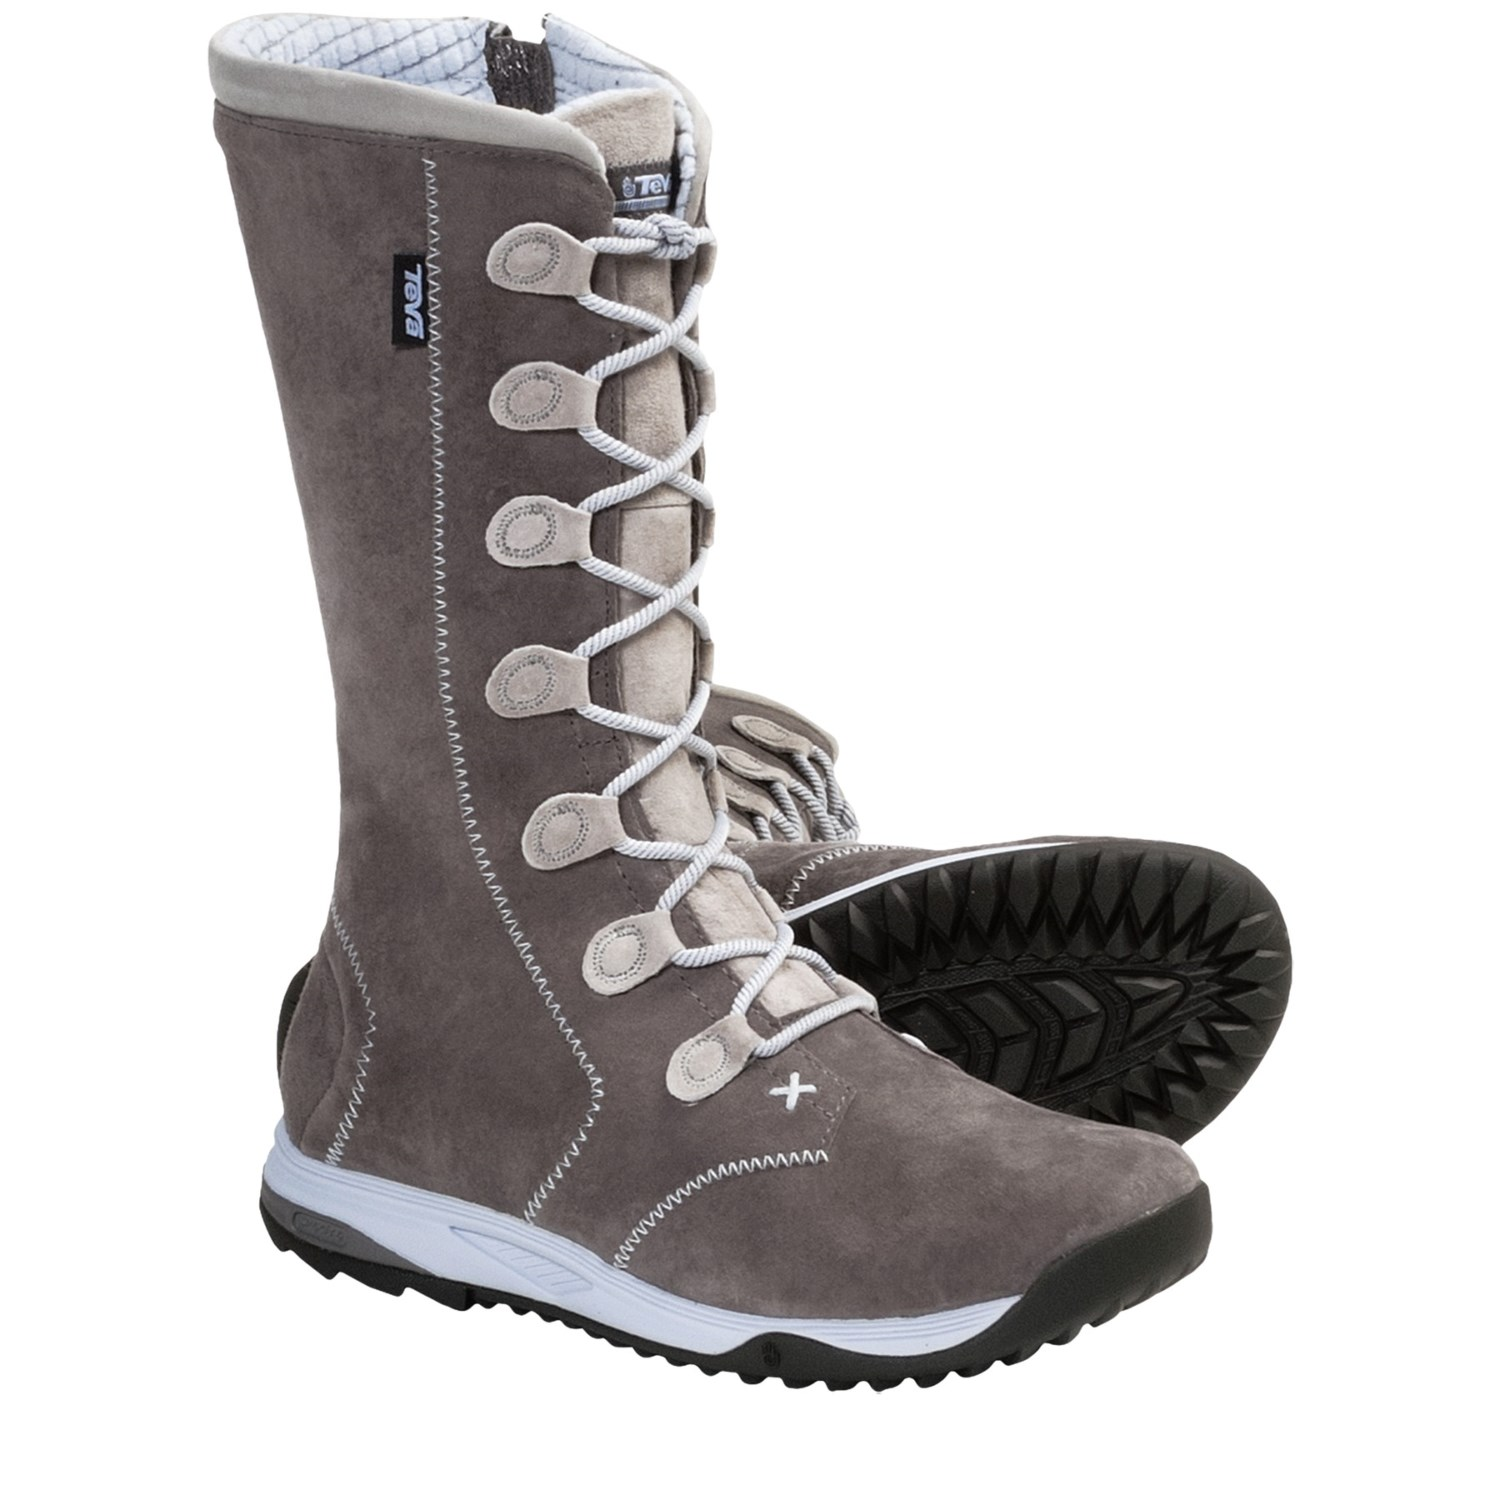 Womens Wide Winter Snow Boots AYOhJd8w